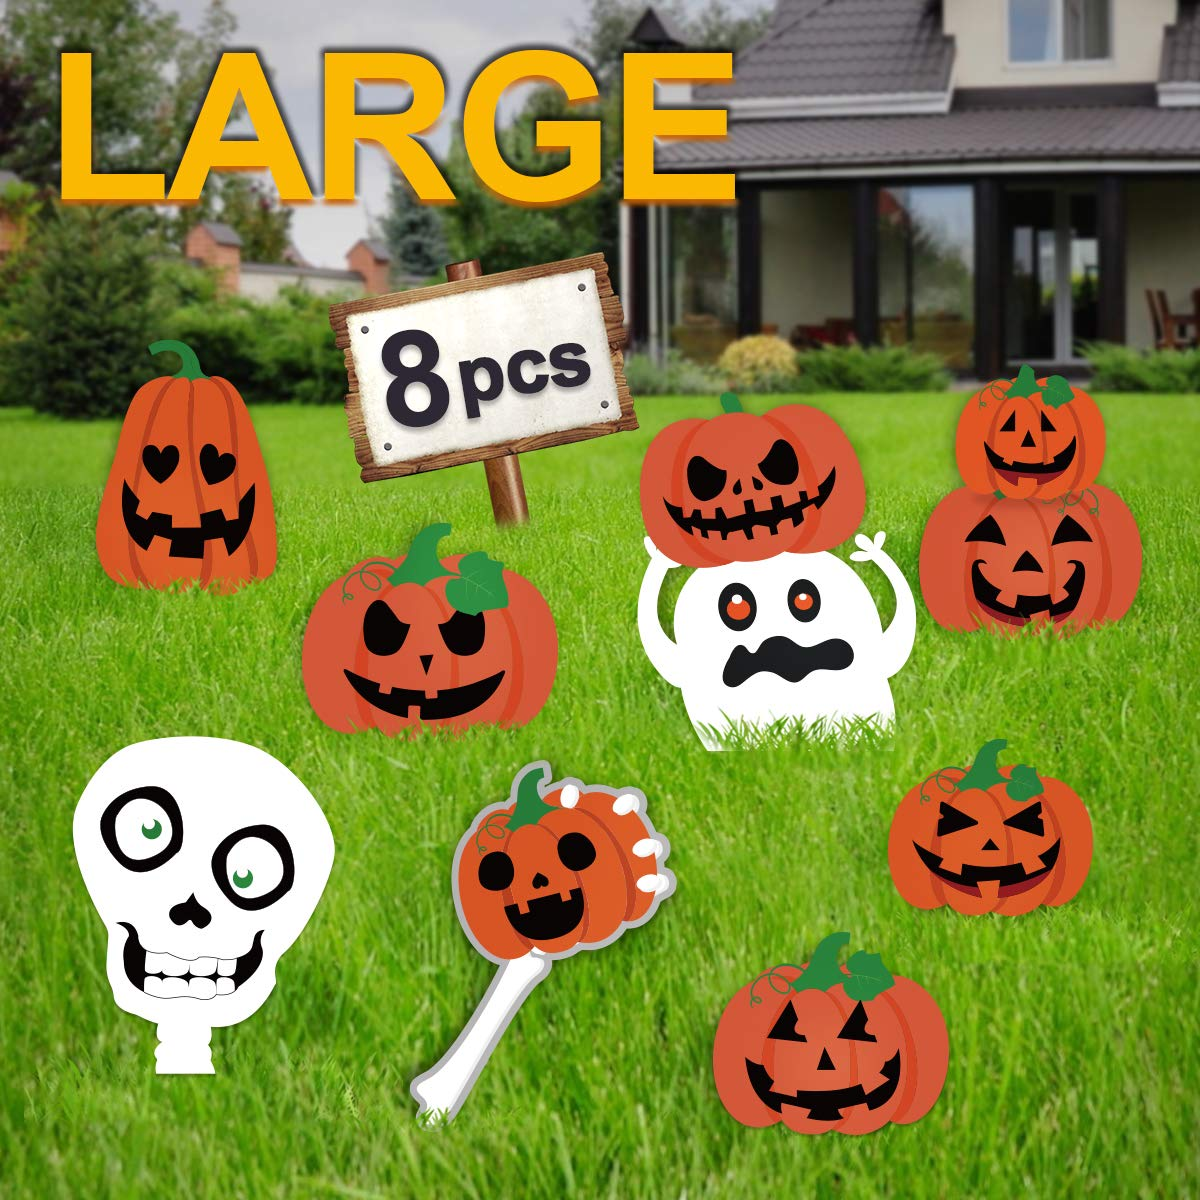 Pawliss Halloween Decorations Outdoor, Extra Large 8ct Pumpkins Skeleton and Ghost Corrugate Yard Signs with Stake